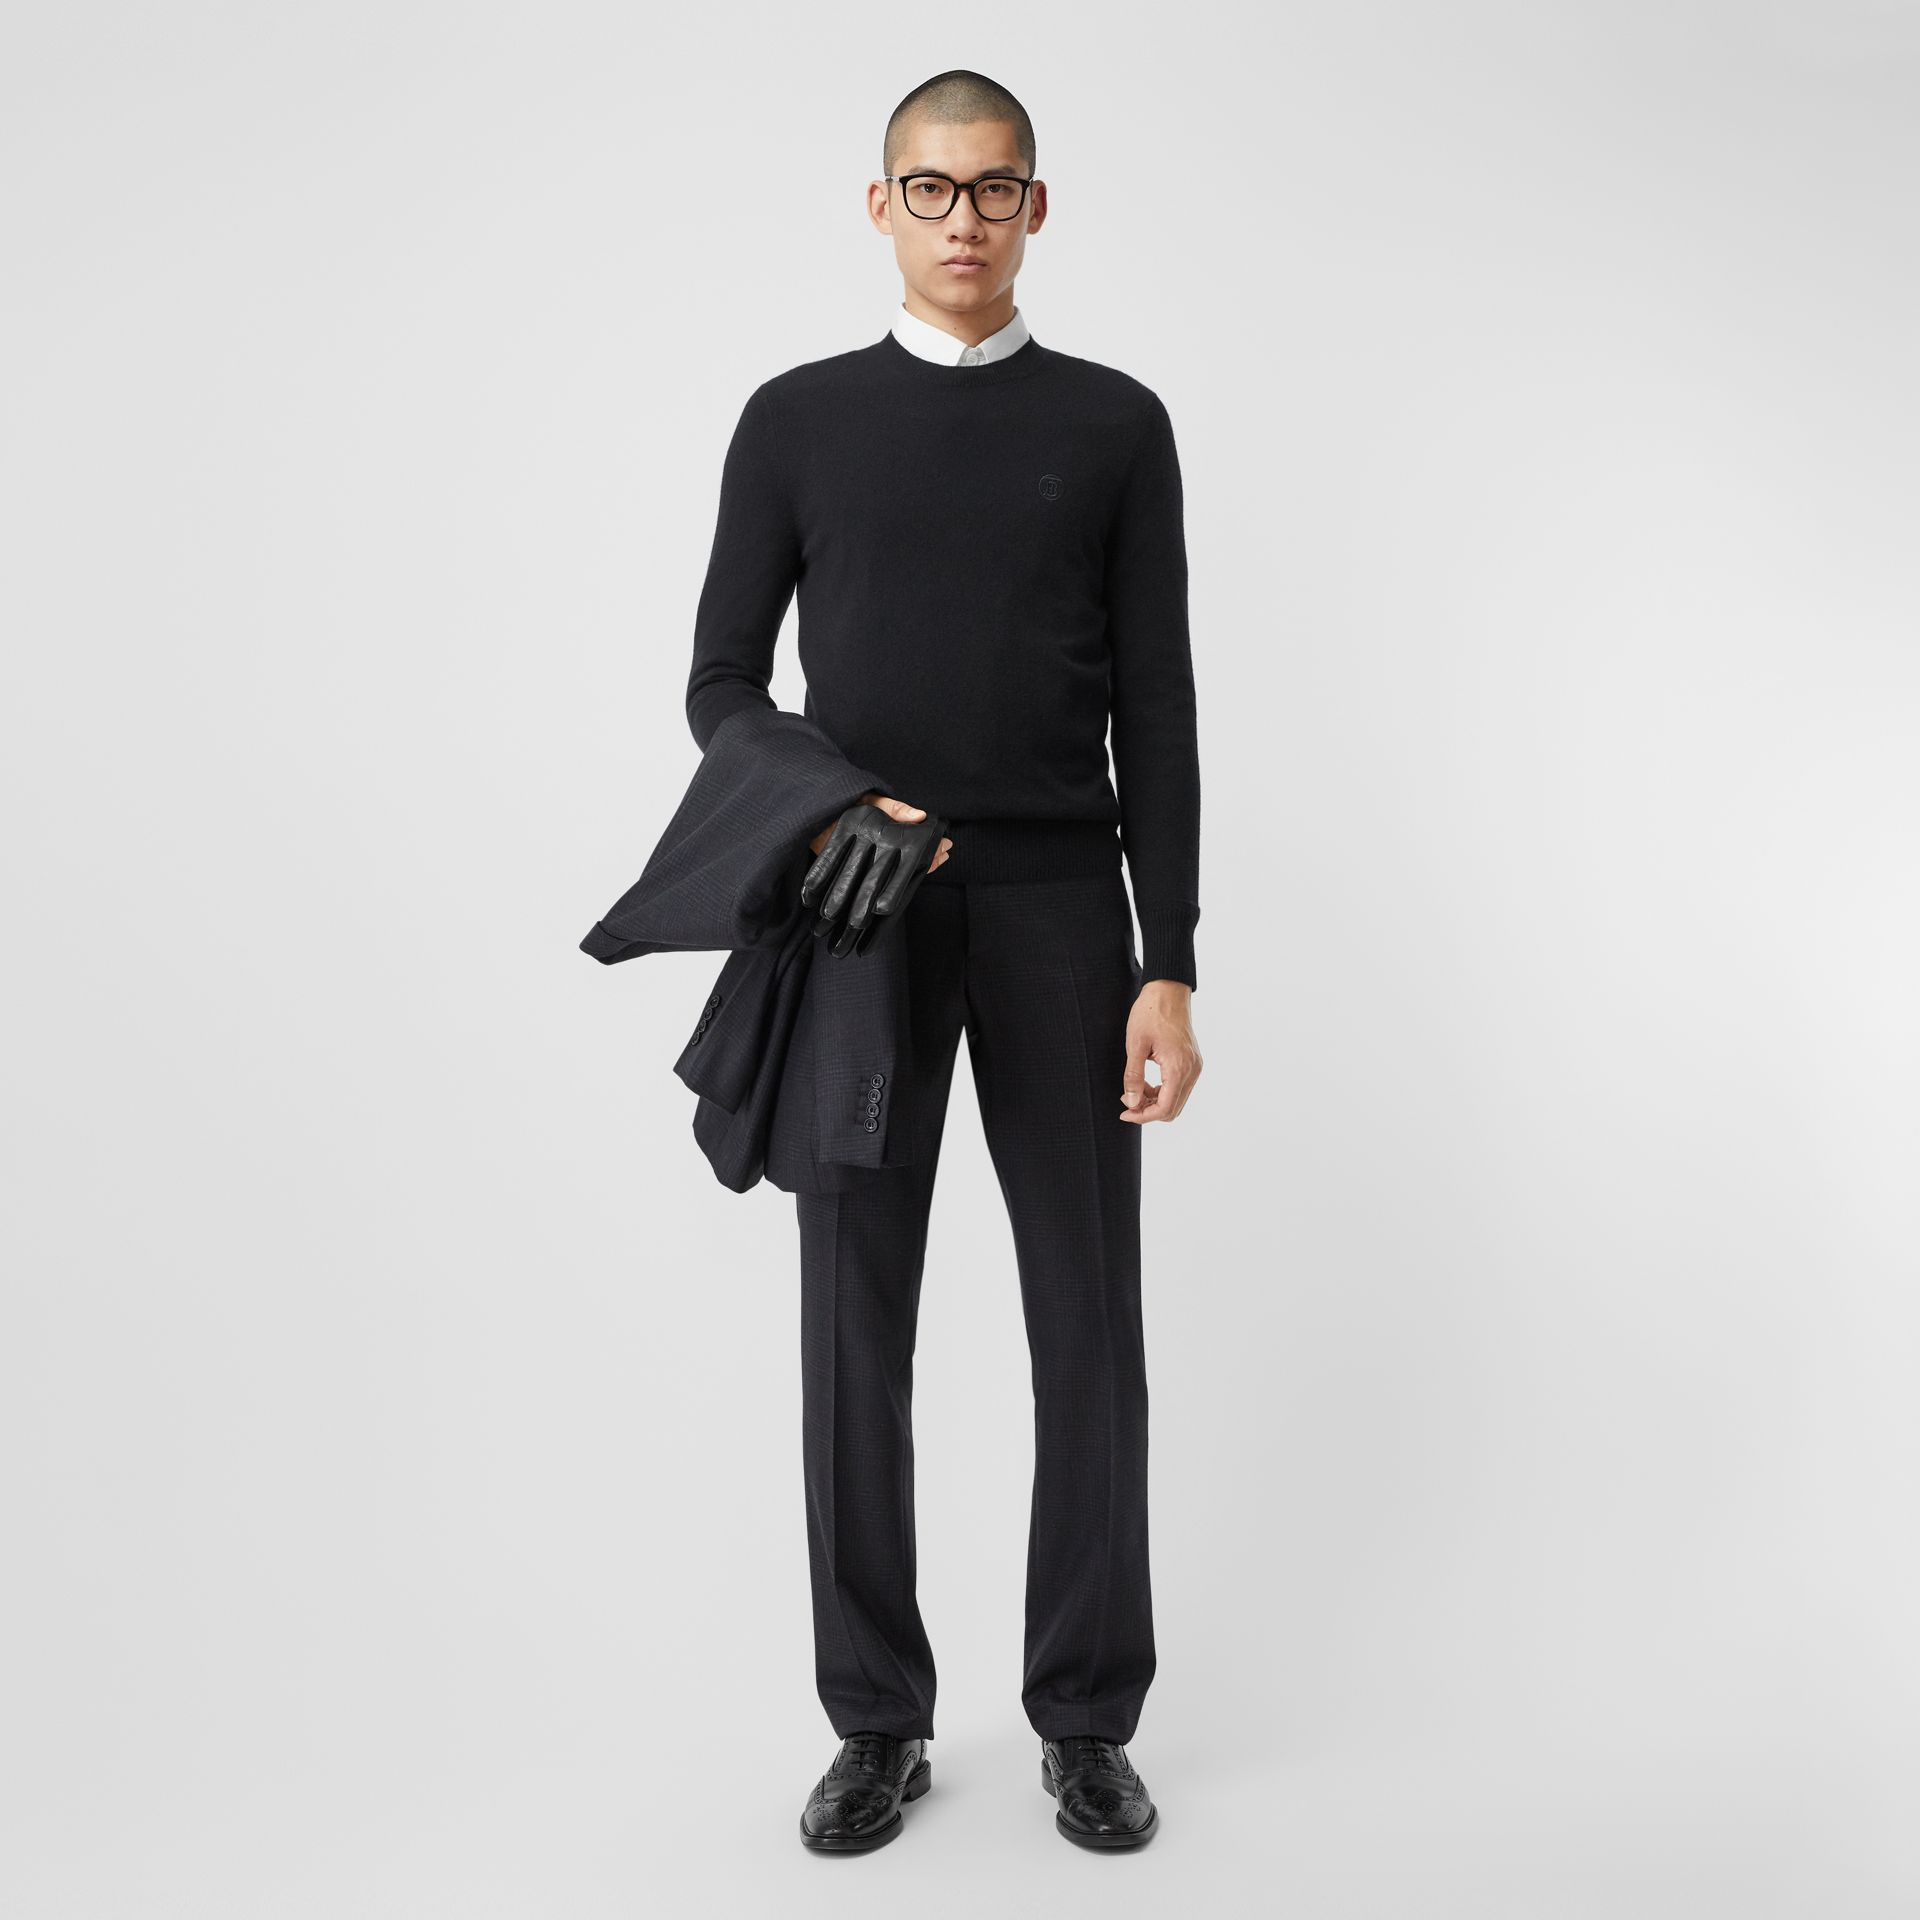 Monogram Motif Cashmere Sweater in Black - Men | Burberry Canada - gallery image 4